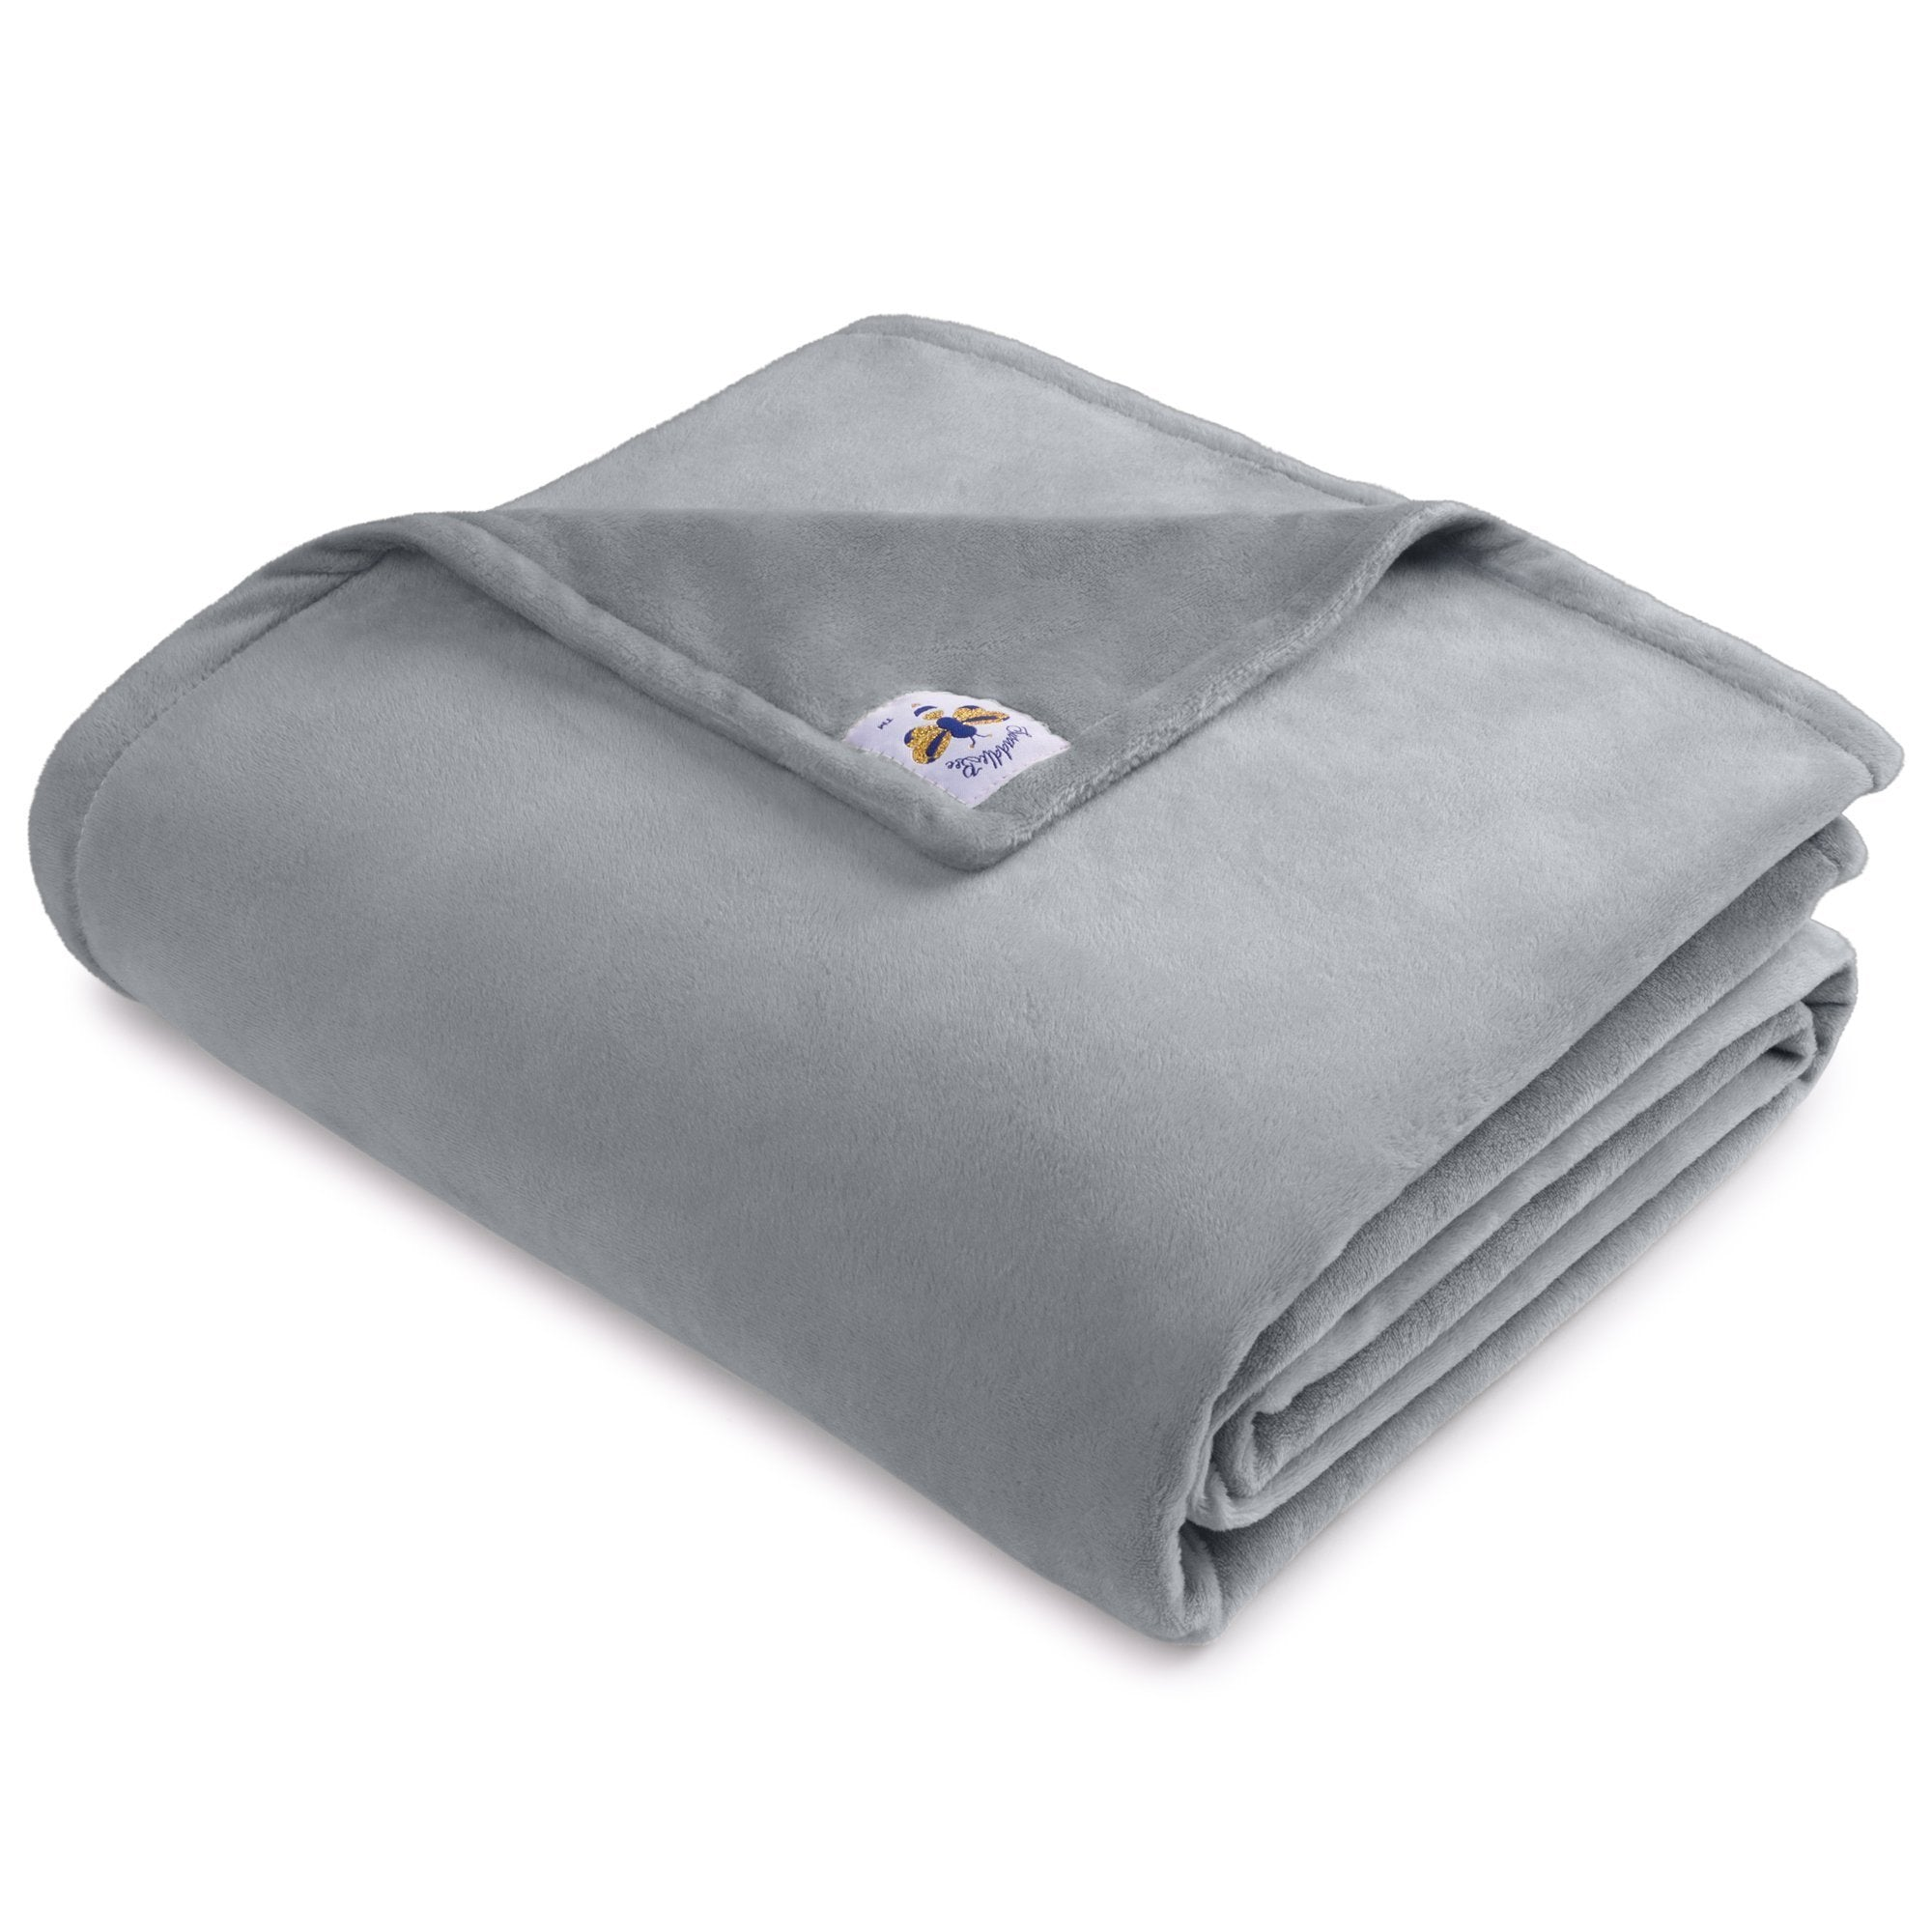 Pre order BiggerBee Minky Throw Blanket Solid Light Grey **PRE ORDER ARRIVES IN 1.5 WEEKS**